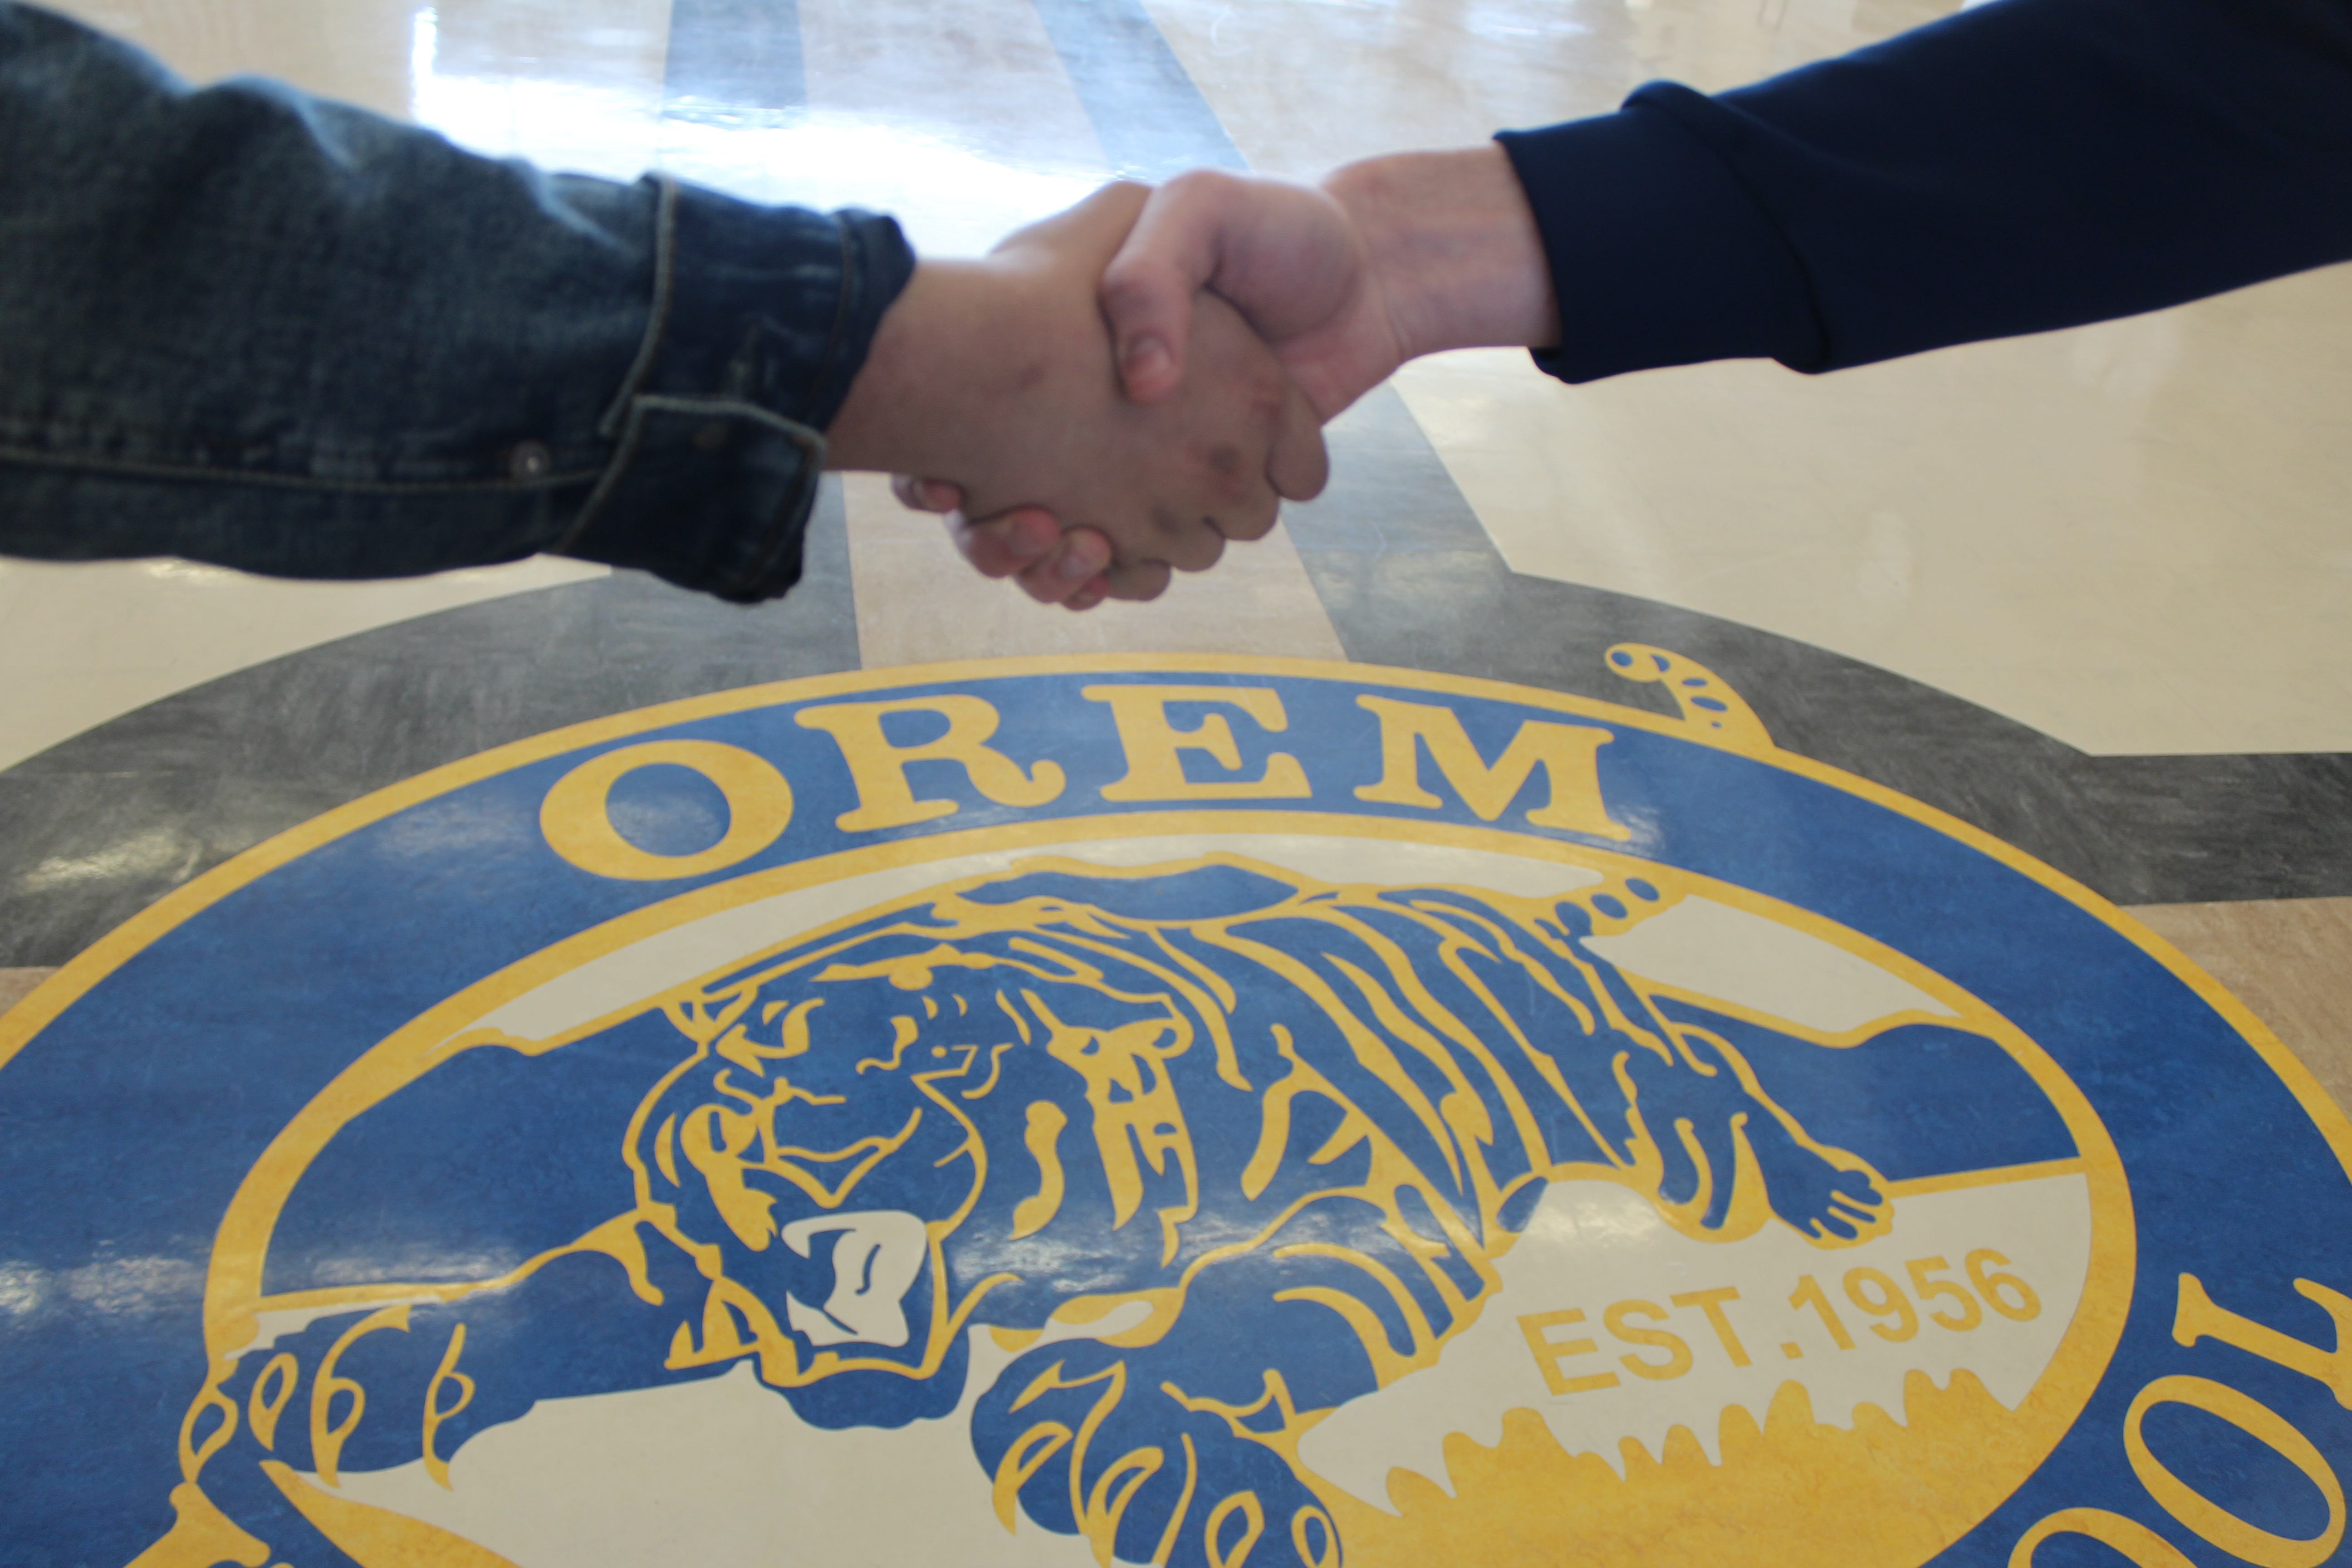 Timpview students infiltrate Orem High